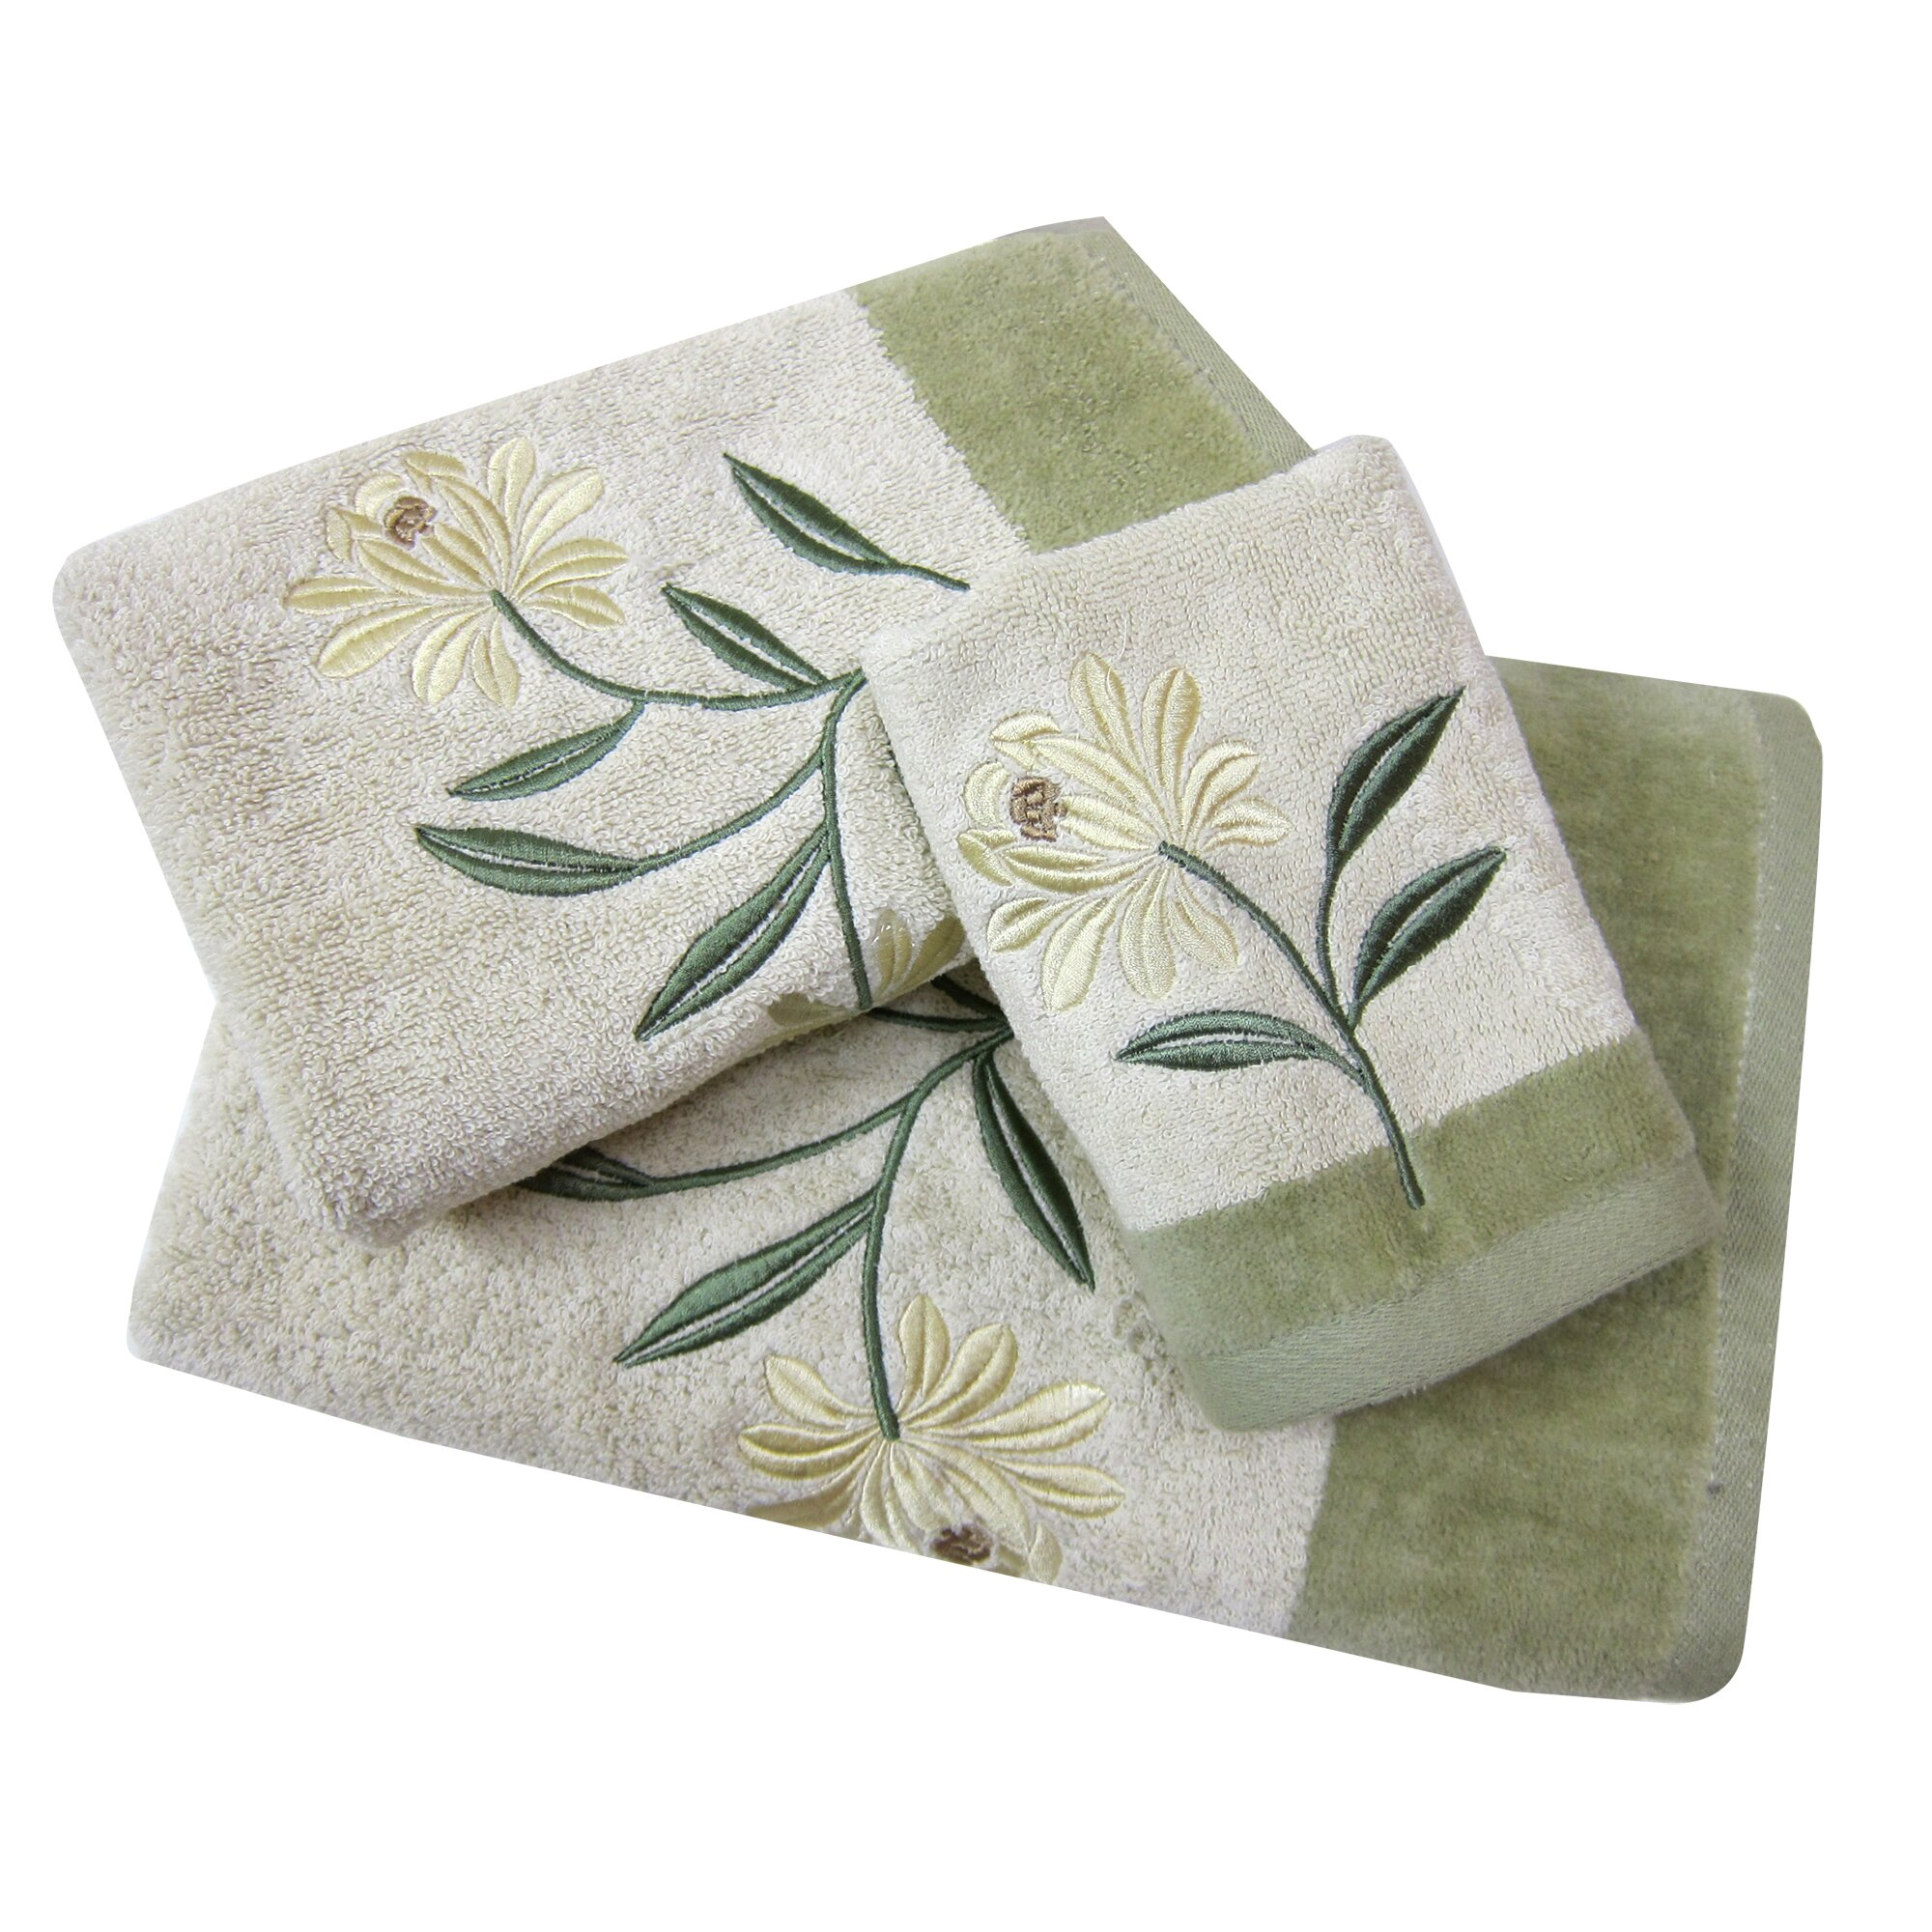 Croscill Hand Towels: Croscill Penelope 3 Piece Towel Set & Reviews